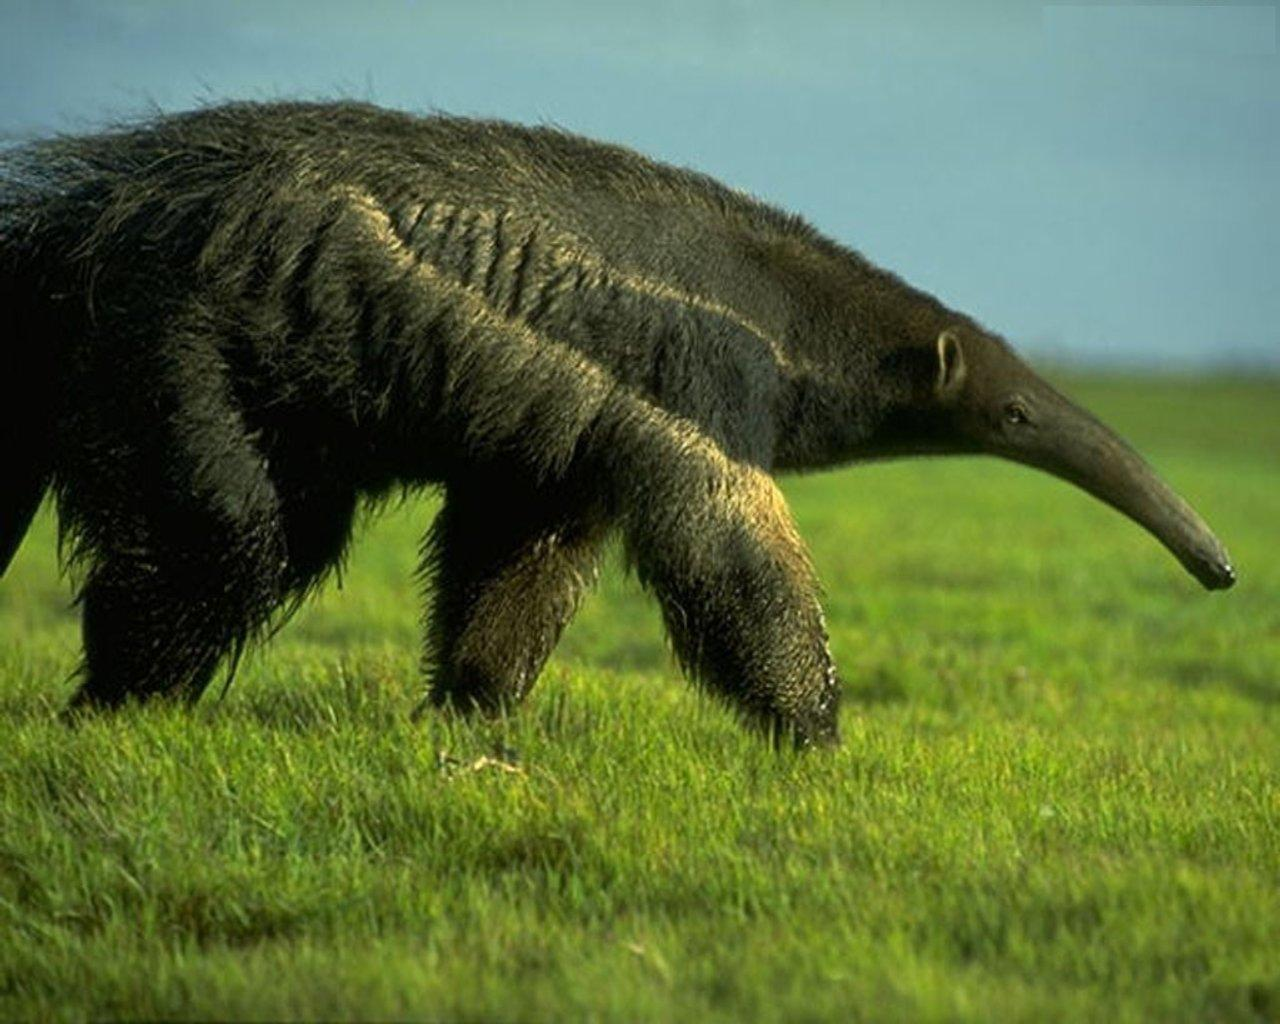 A Giant Anteater looking for food